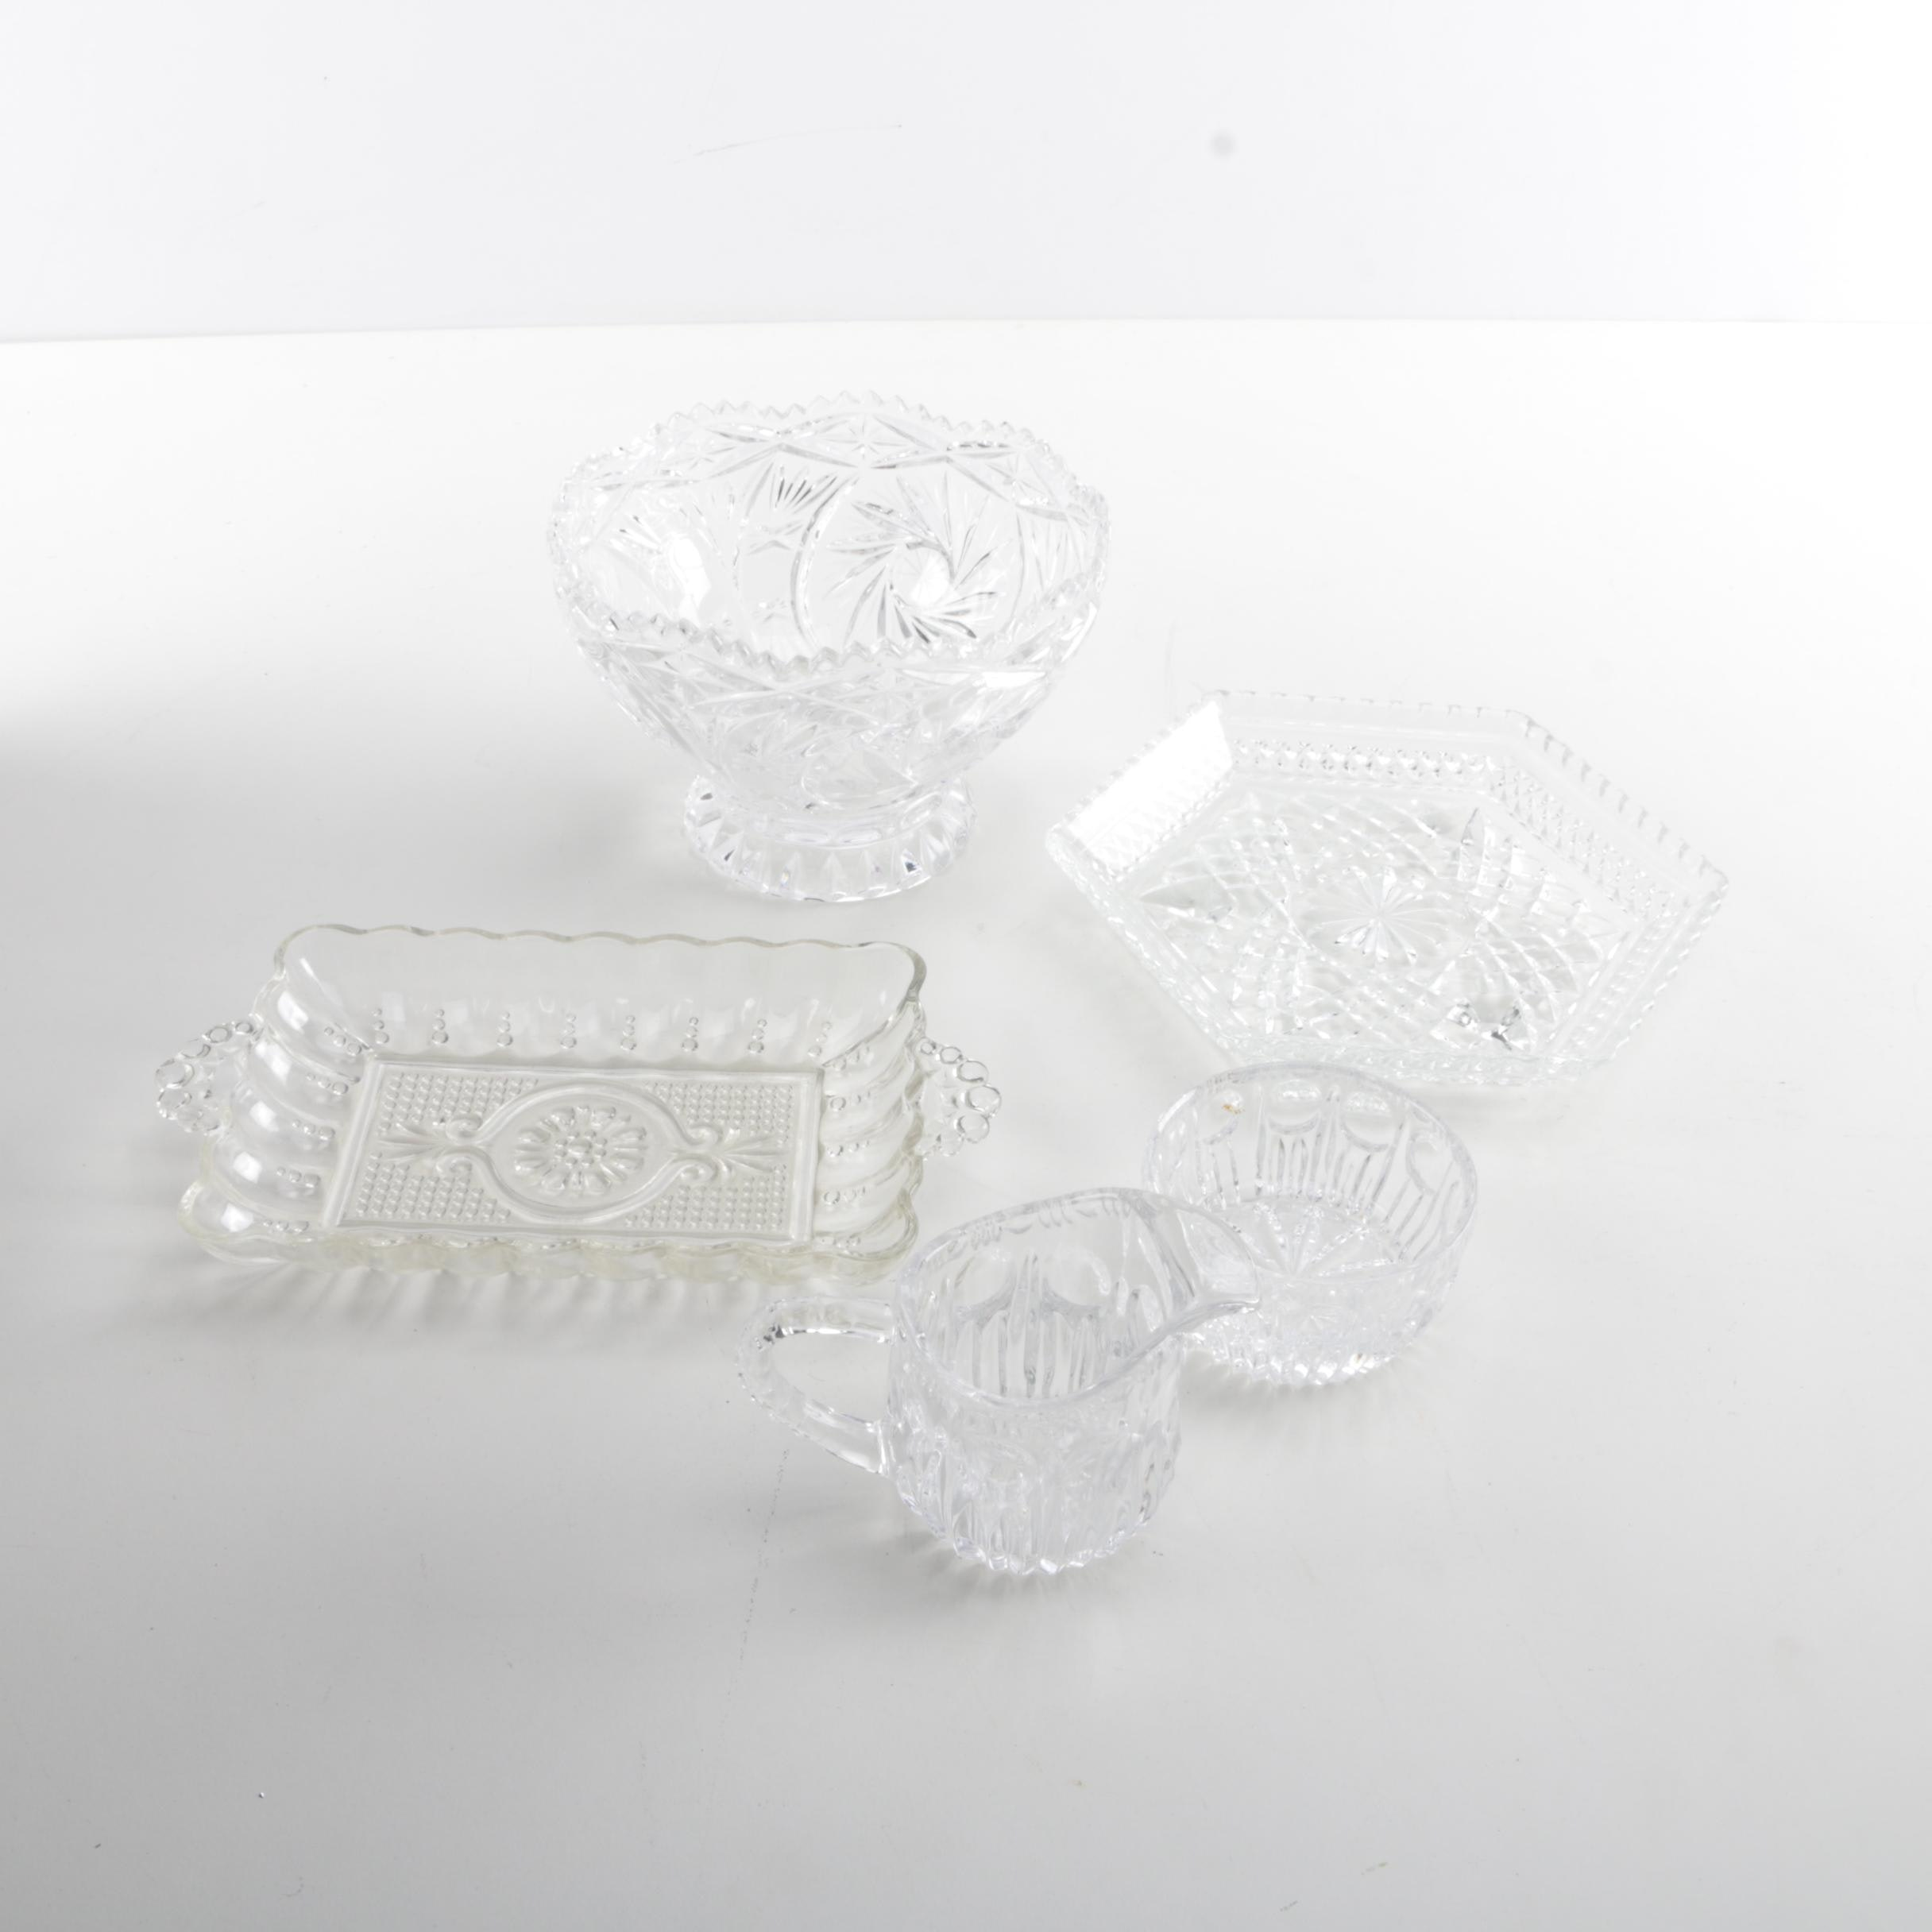 Collection of Pressed Glass and Crystal Tableware